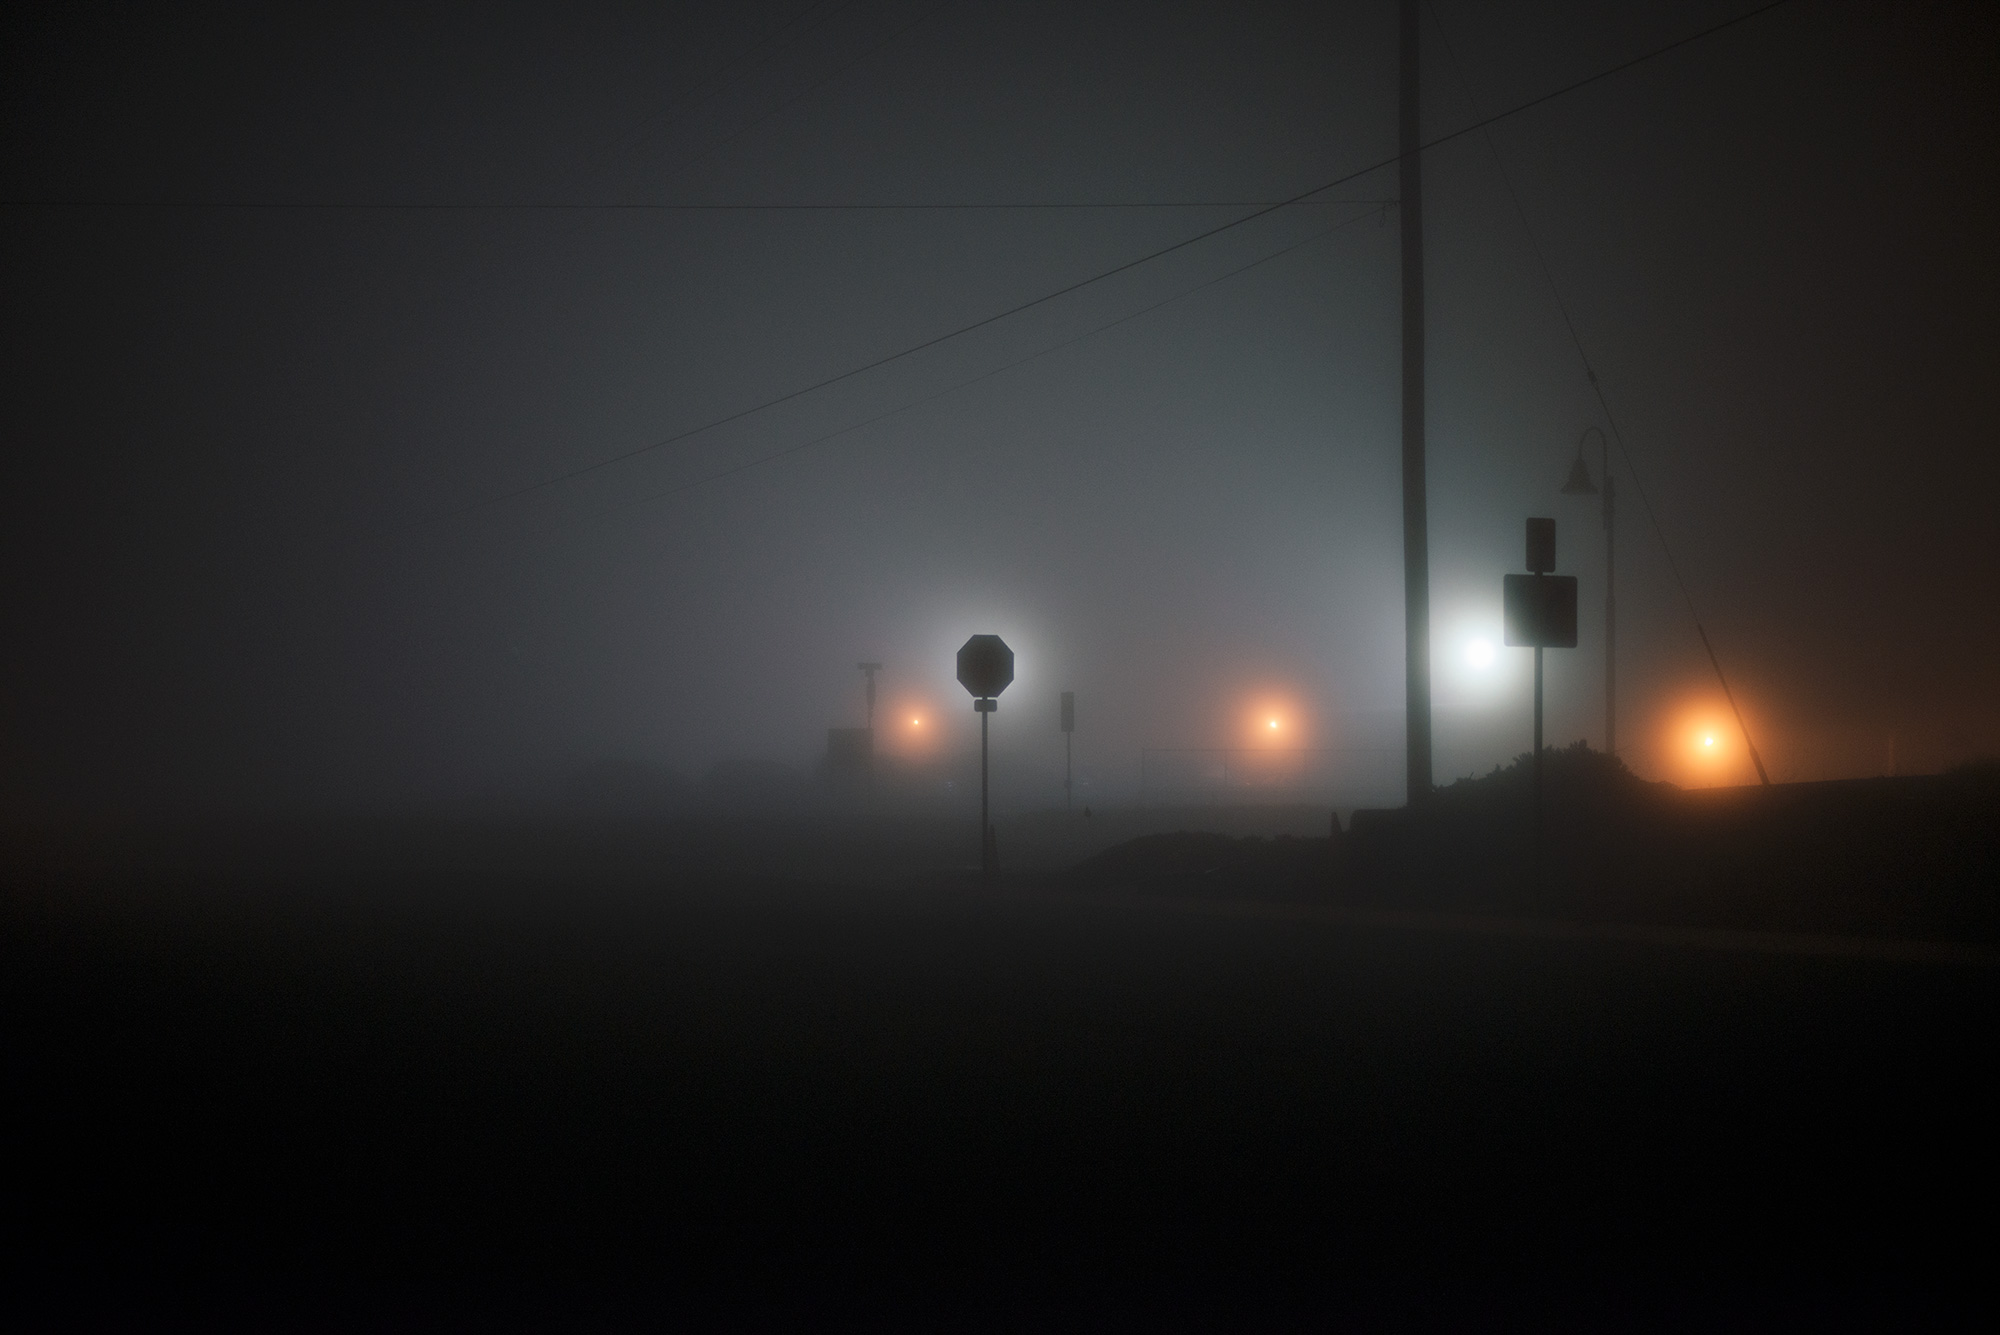 Stop sign at night with fog.